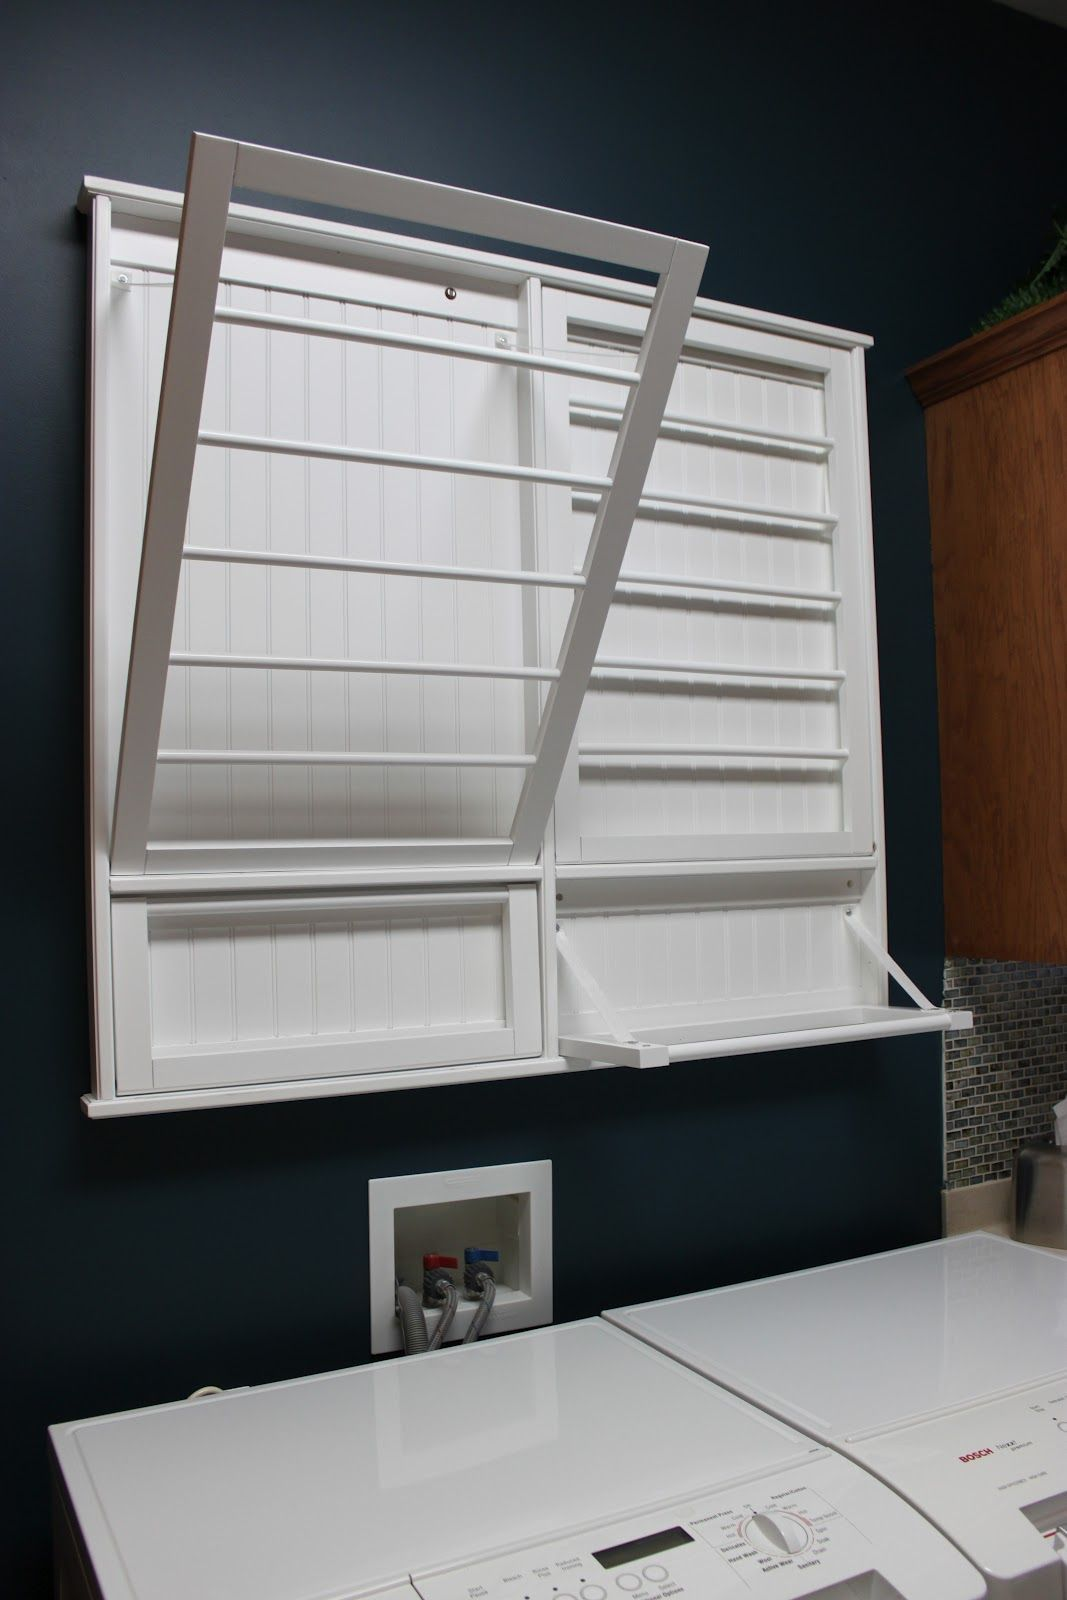 71 Reference Of Clothes Hanger Rack For Laundry Room In 2020